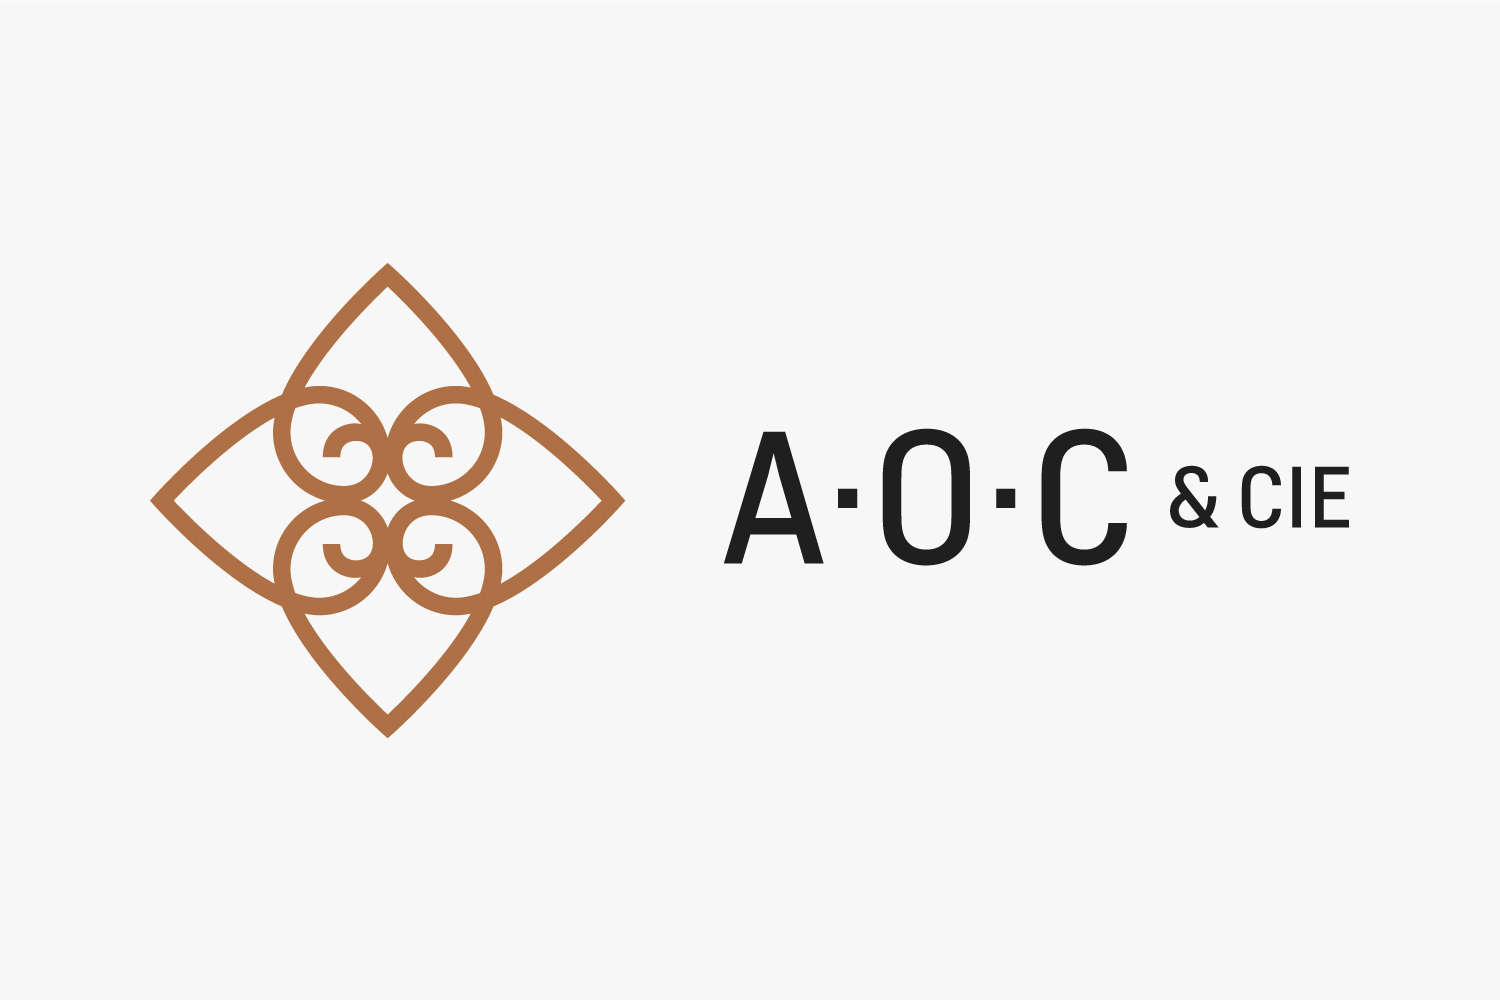 A.O.C. & CIE – Wine Agency – Identity, Web & Typography by Isabelle Robida – Infrarouge [Design & Culture] – 2015 – infrarouge.ca